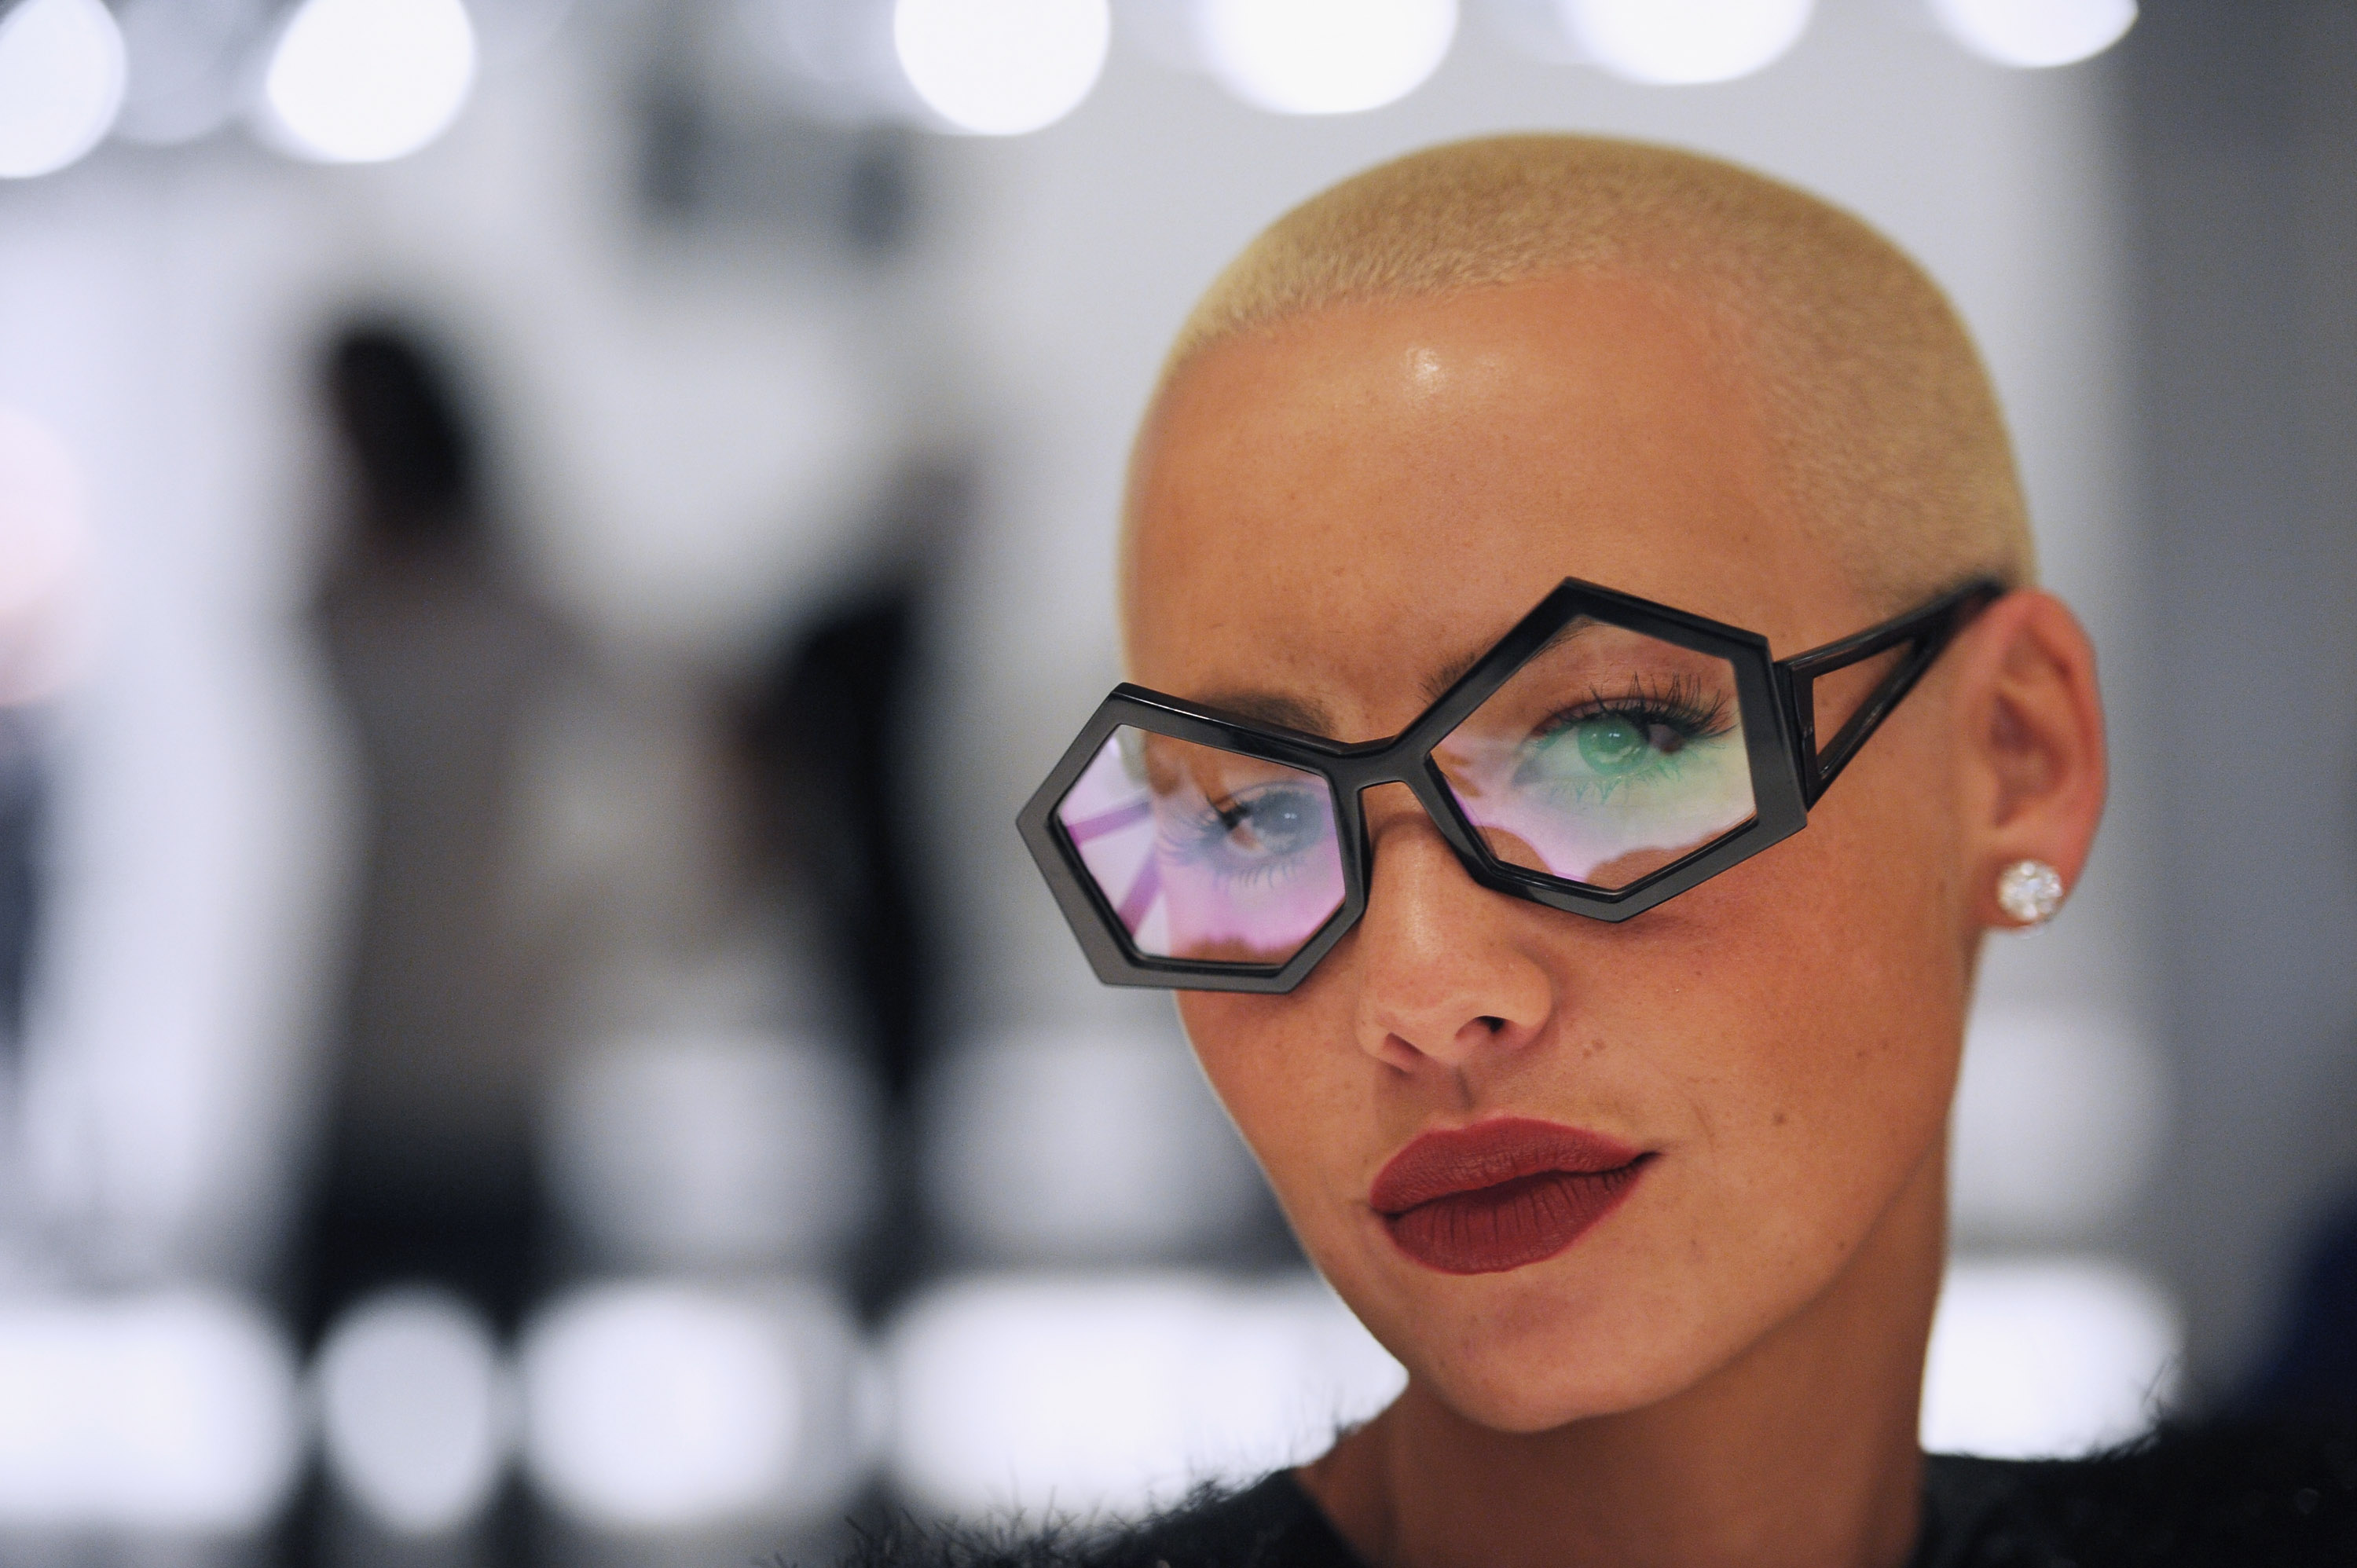 LONDON, ENGLAND - SEPTEMBER 19: Amber Rose attends the Pam Hogg Spring Summer 2011 fashion show at On/Off during London Fashion Week on September 19, 2010 in London, England. (Photo by Ian Gavan/Getty Images)